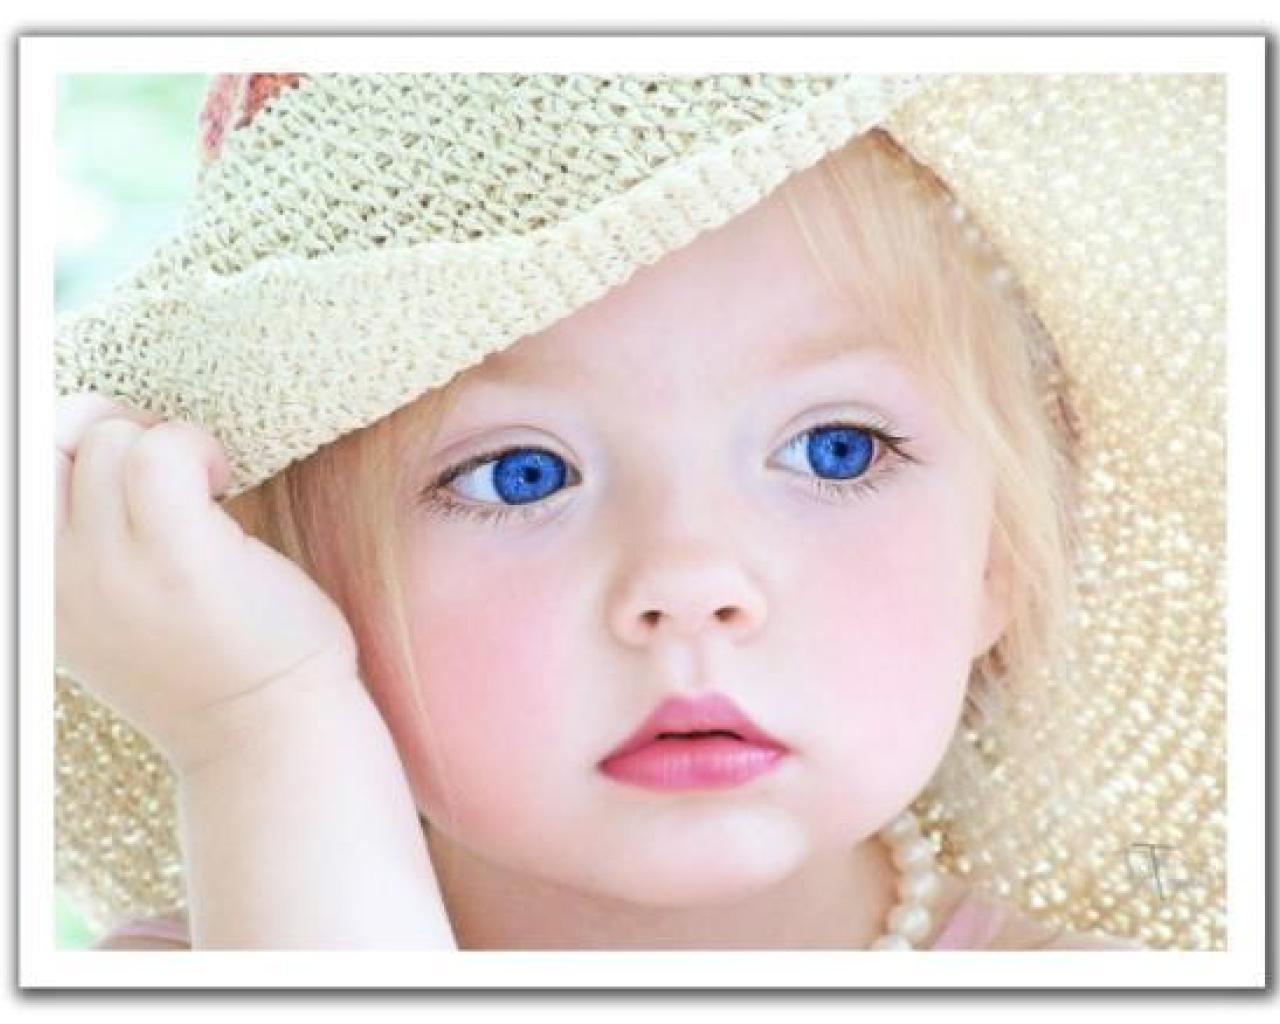 Free Download Beautiful Baby Girl Wallpapers Sf Wallpaper 1280x1024 For Your Desktop Mobile Tablet Explore 18 Beautiful Beby Wallpaper Beautiful Beby Wallpaper Beautiful Wallpaper Wallpapers Beautiful